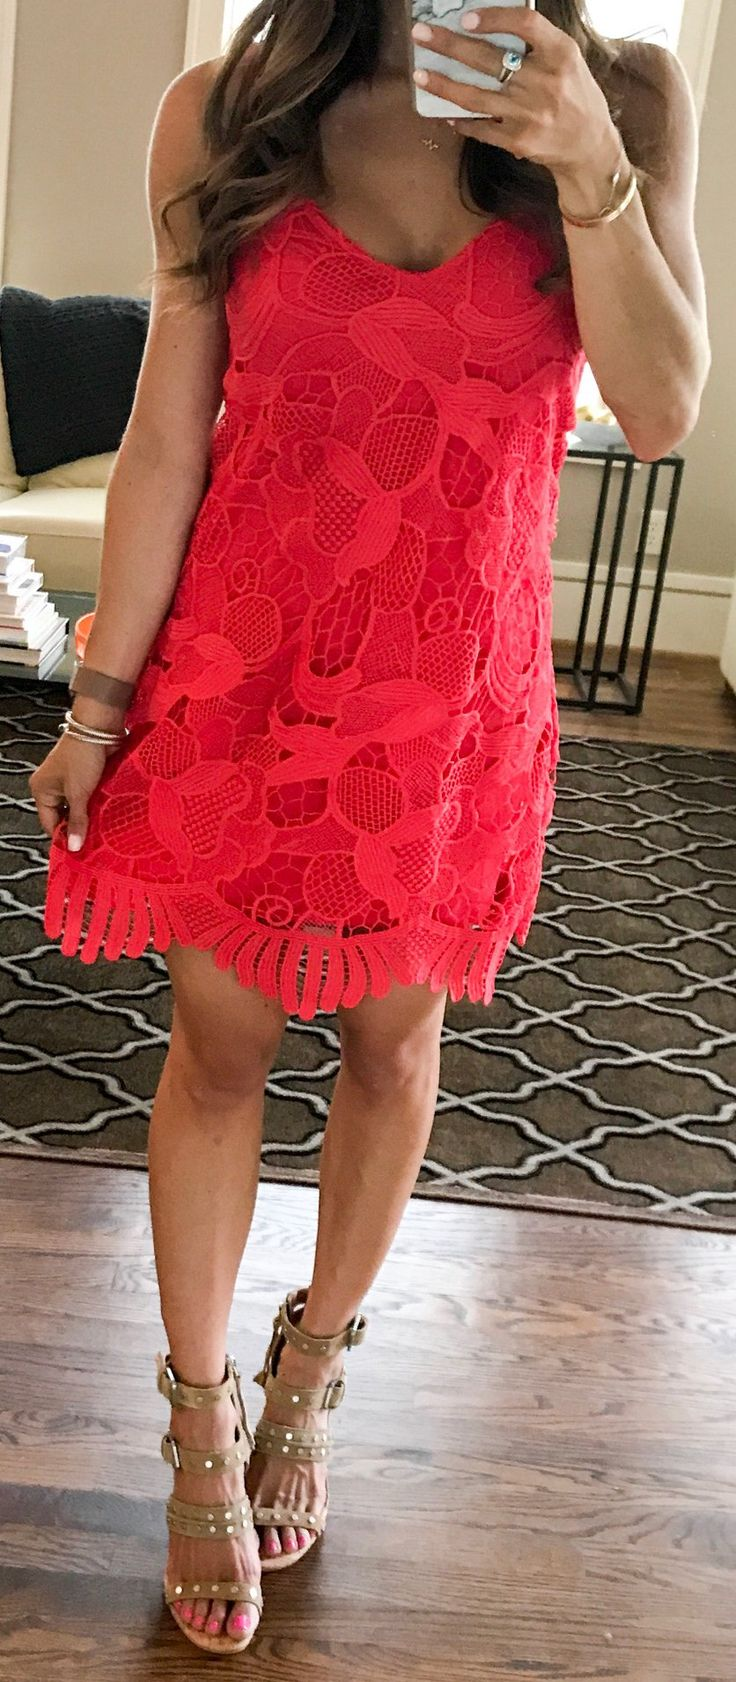 #summer #outfits SALE Alert! This Dress Is 30% Off (wearing Xs) And Comes In White And Black As Well! Love It For Upcoming Weddings Or Vacations & Can Be Dressed Up With Heels Or Down With Flats! Also These Shoes Have Been On Repeat Because SO Comfy!